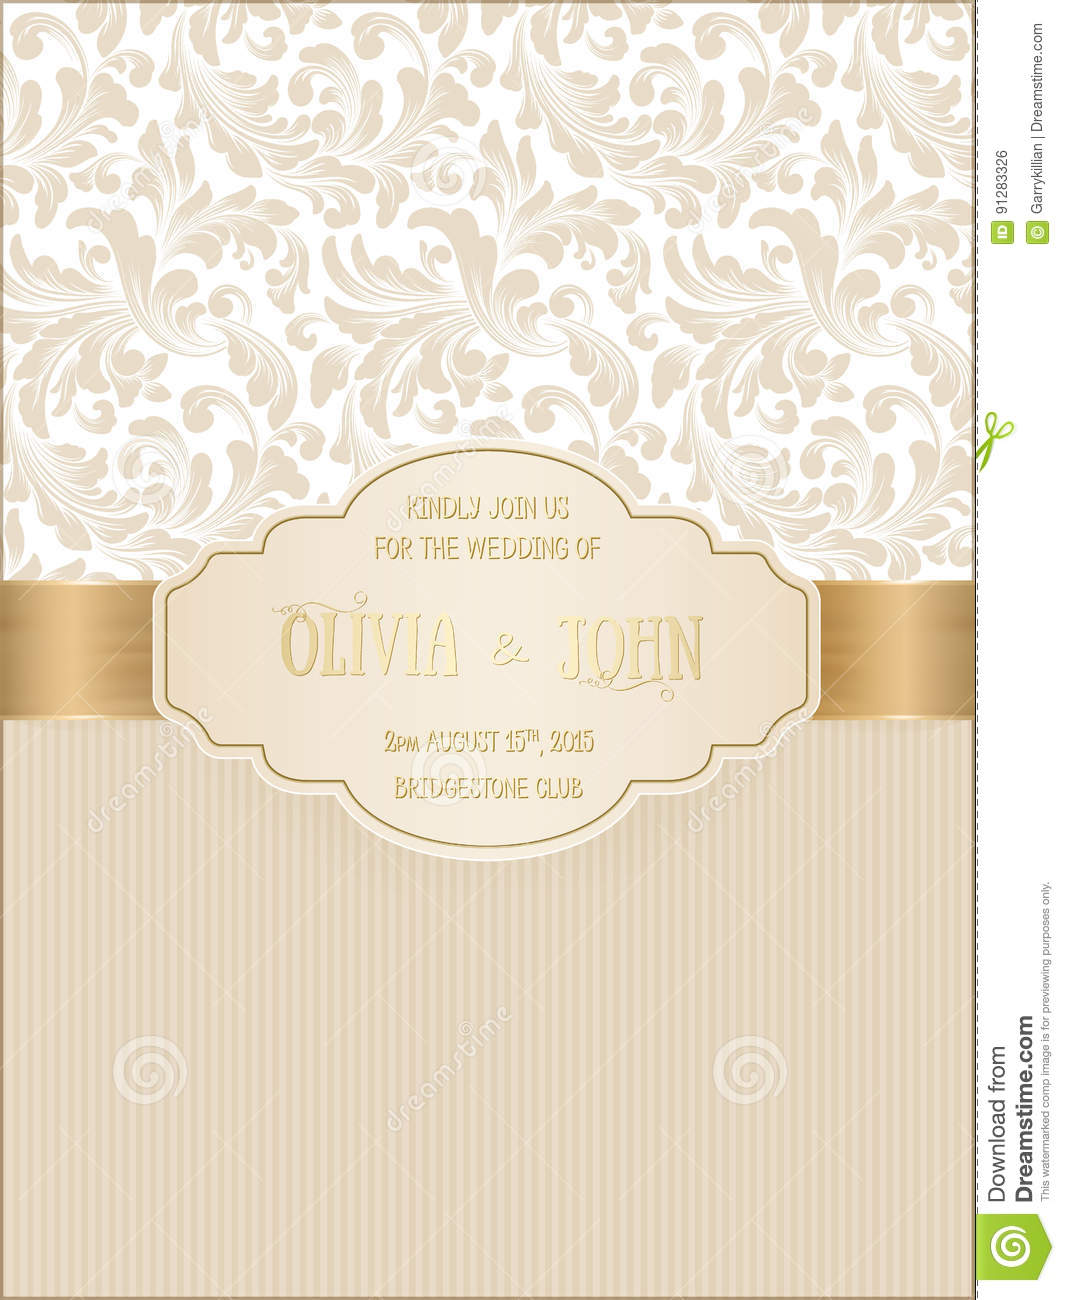 Vector invitation, cards or wedding card with damask background and elegant floral elements.